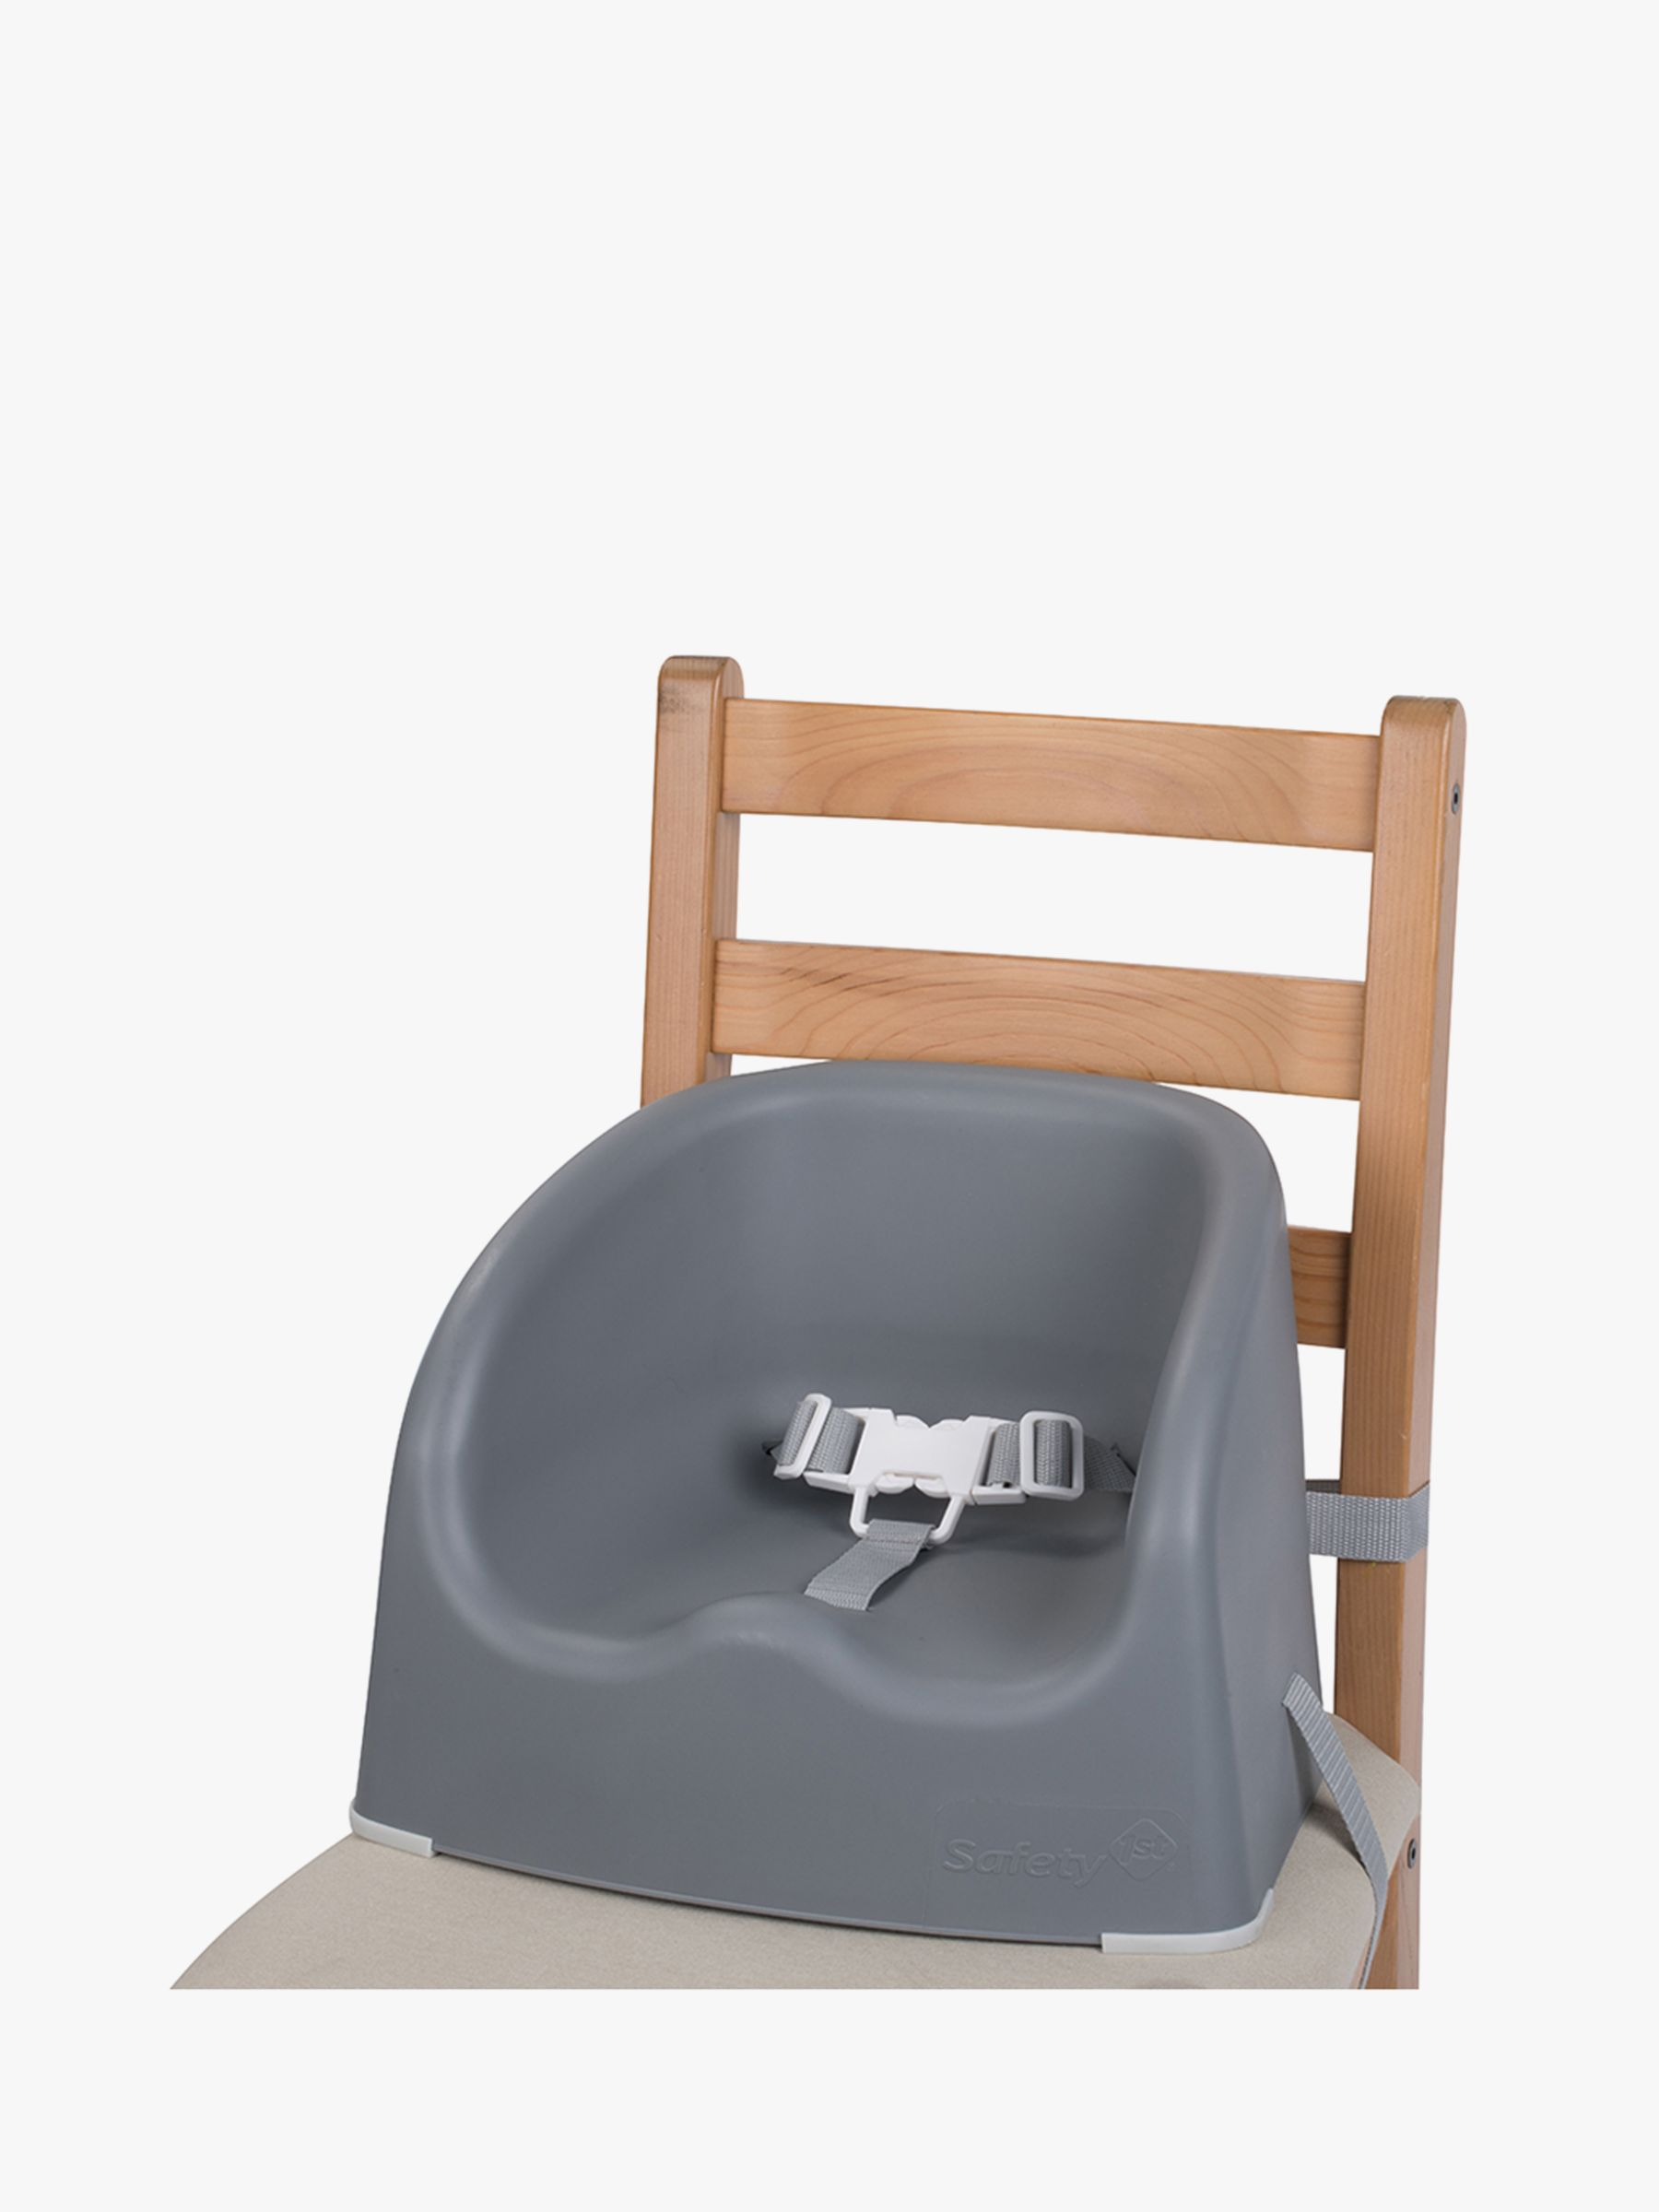 Safety 1st Safety 1st Essential Booster Feeding Seat, Grey